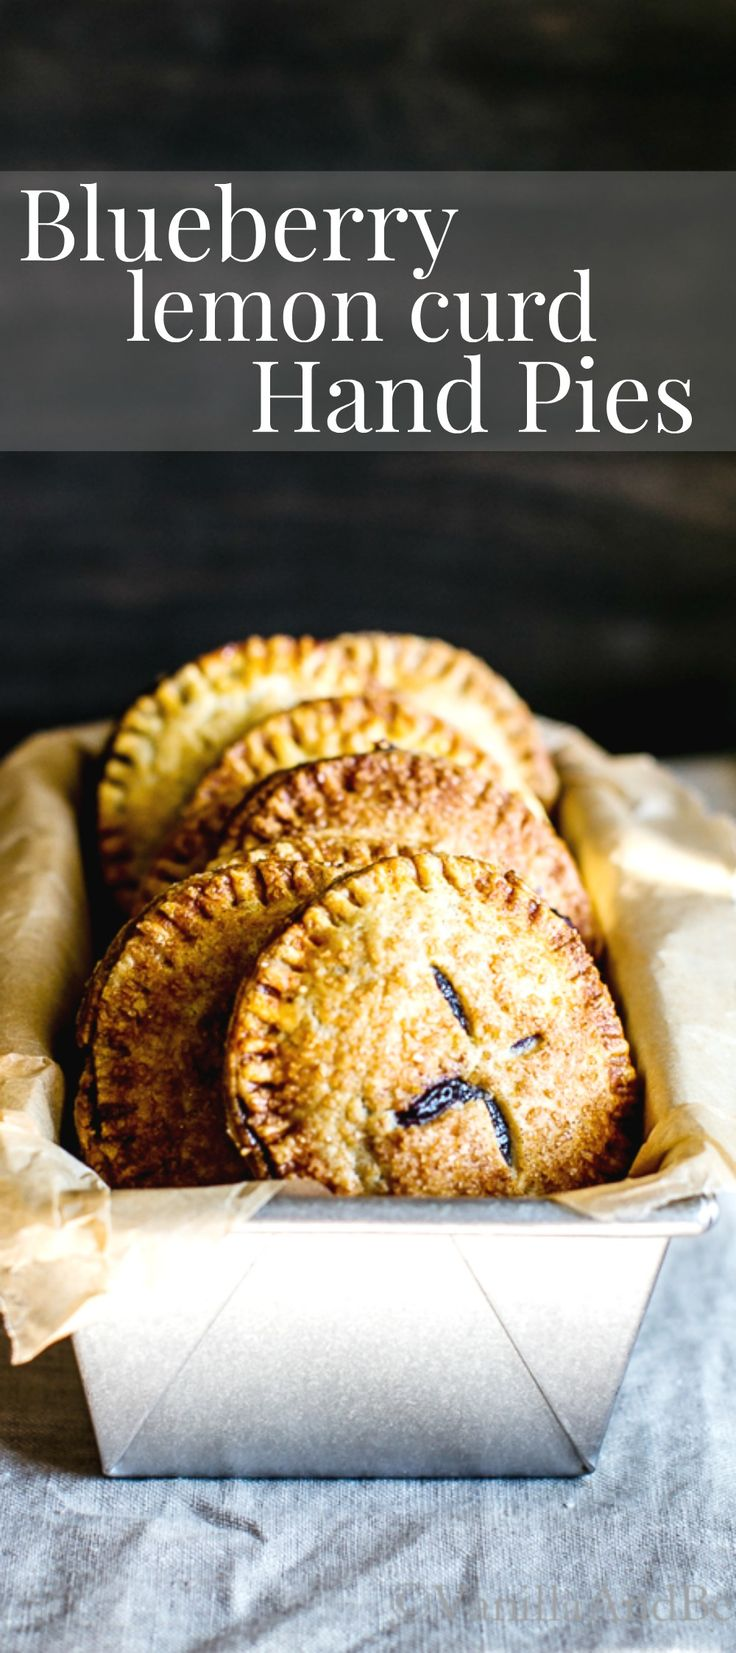 Prep ahead, assemble and bake later. Tuck these Blueberry Lemon Curd Hand Pies into your love's lunchbox, or serve warm with a scoop of vanilla bean ice cream. Dessert   Summer   Recipes   Pastry